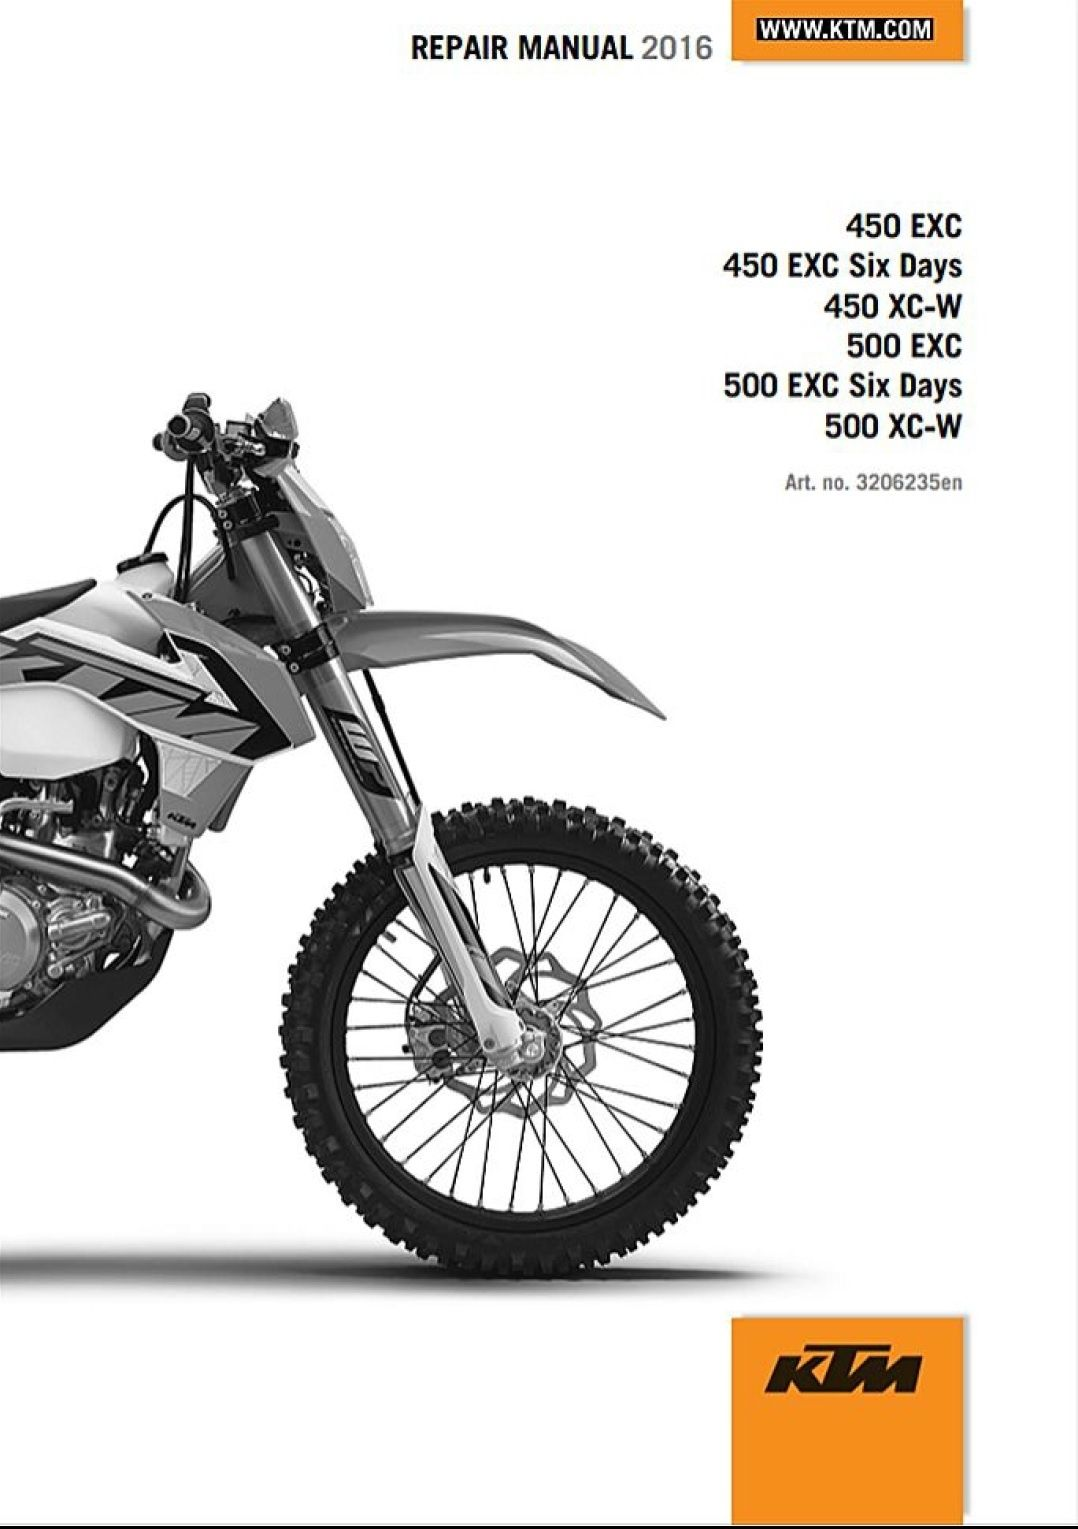 hight resolution of 2016 ktm 450 500 exc xc w 6days service repair manual